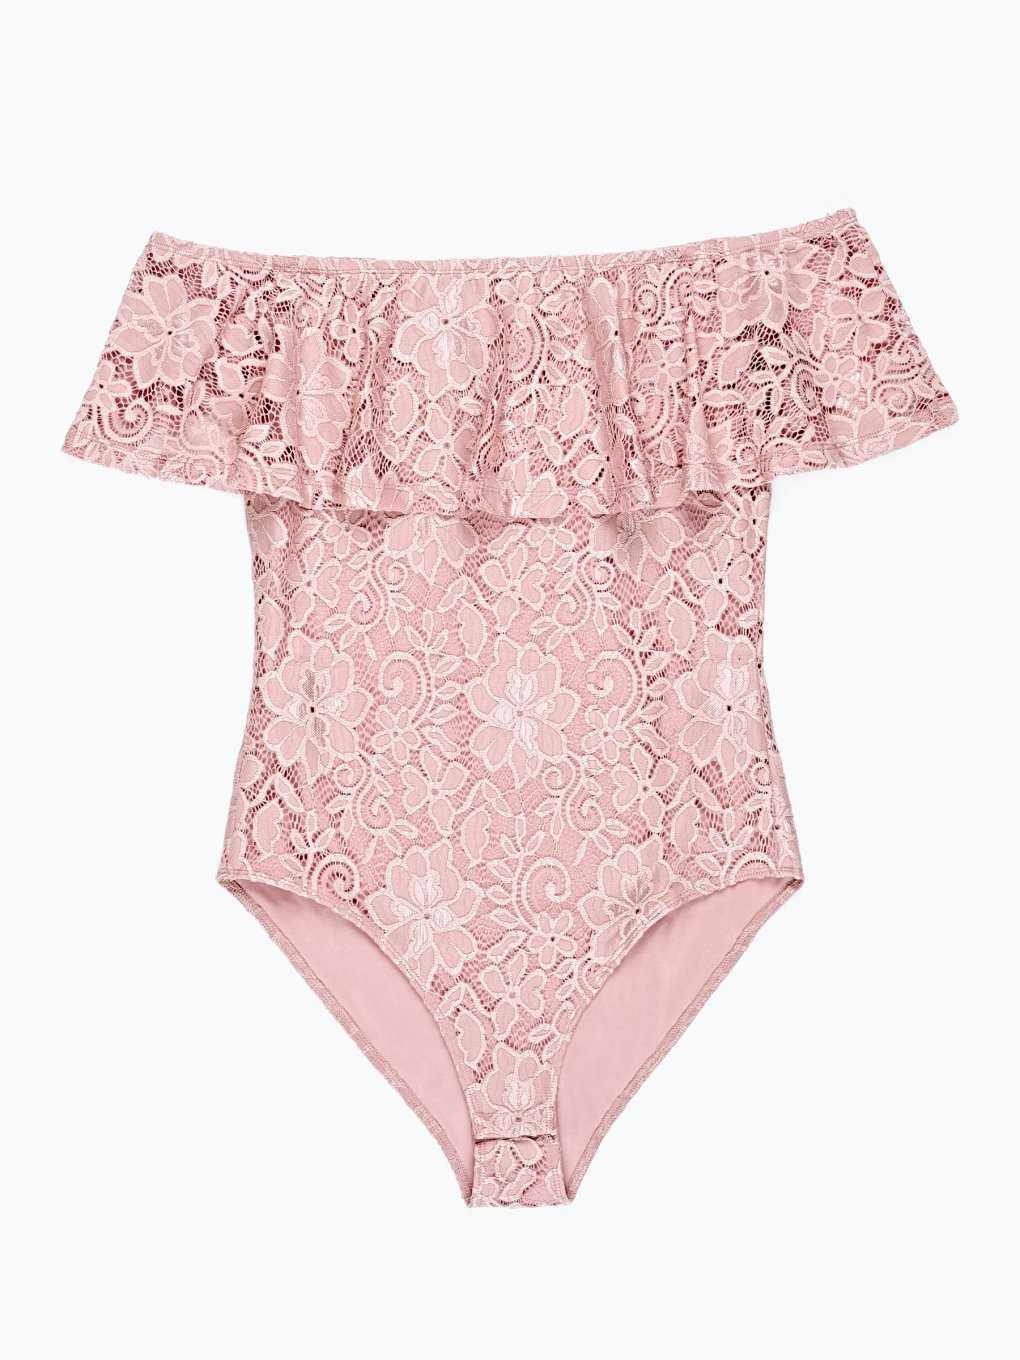 LACE BODYSUIT WITH RUFFLE